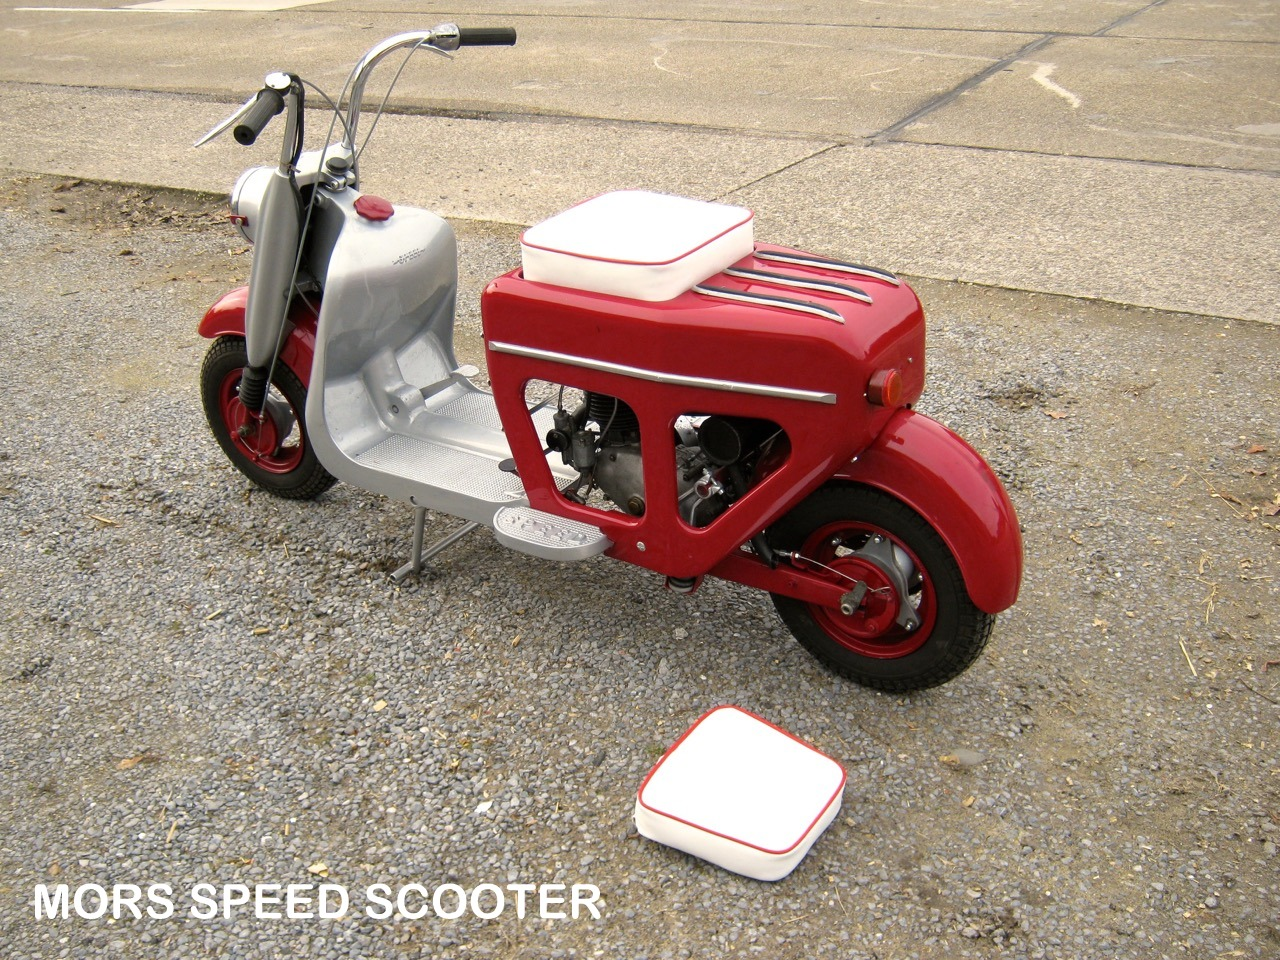 mors-speed-scooter-3